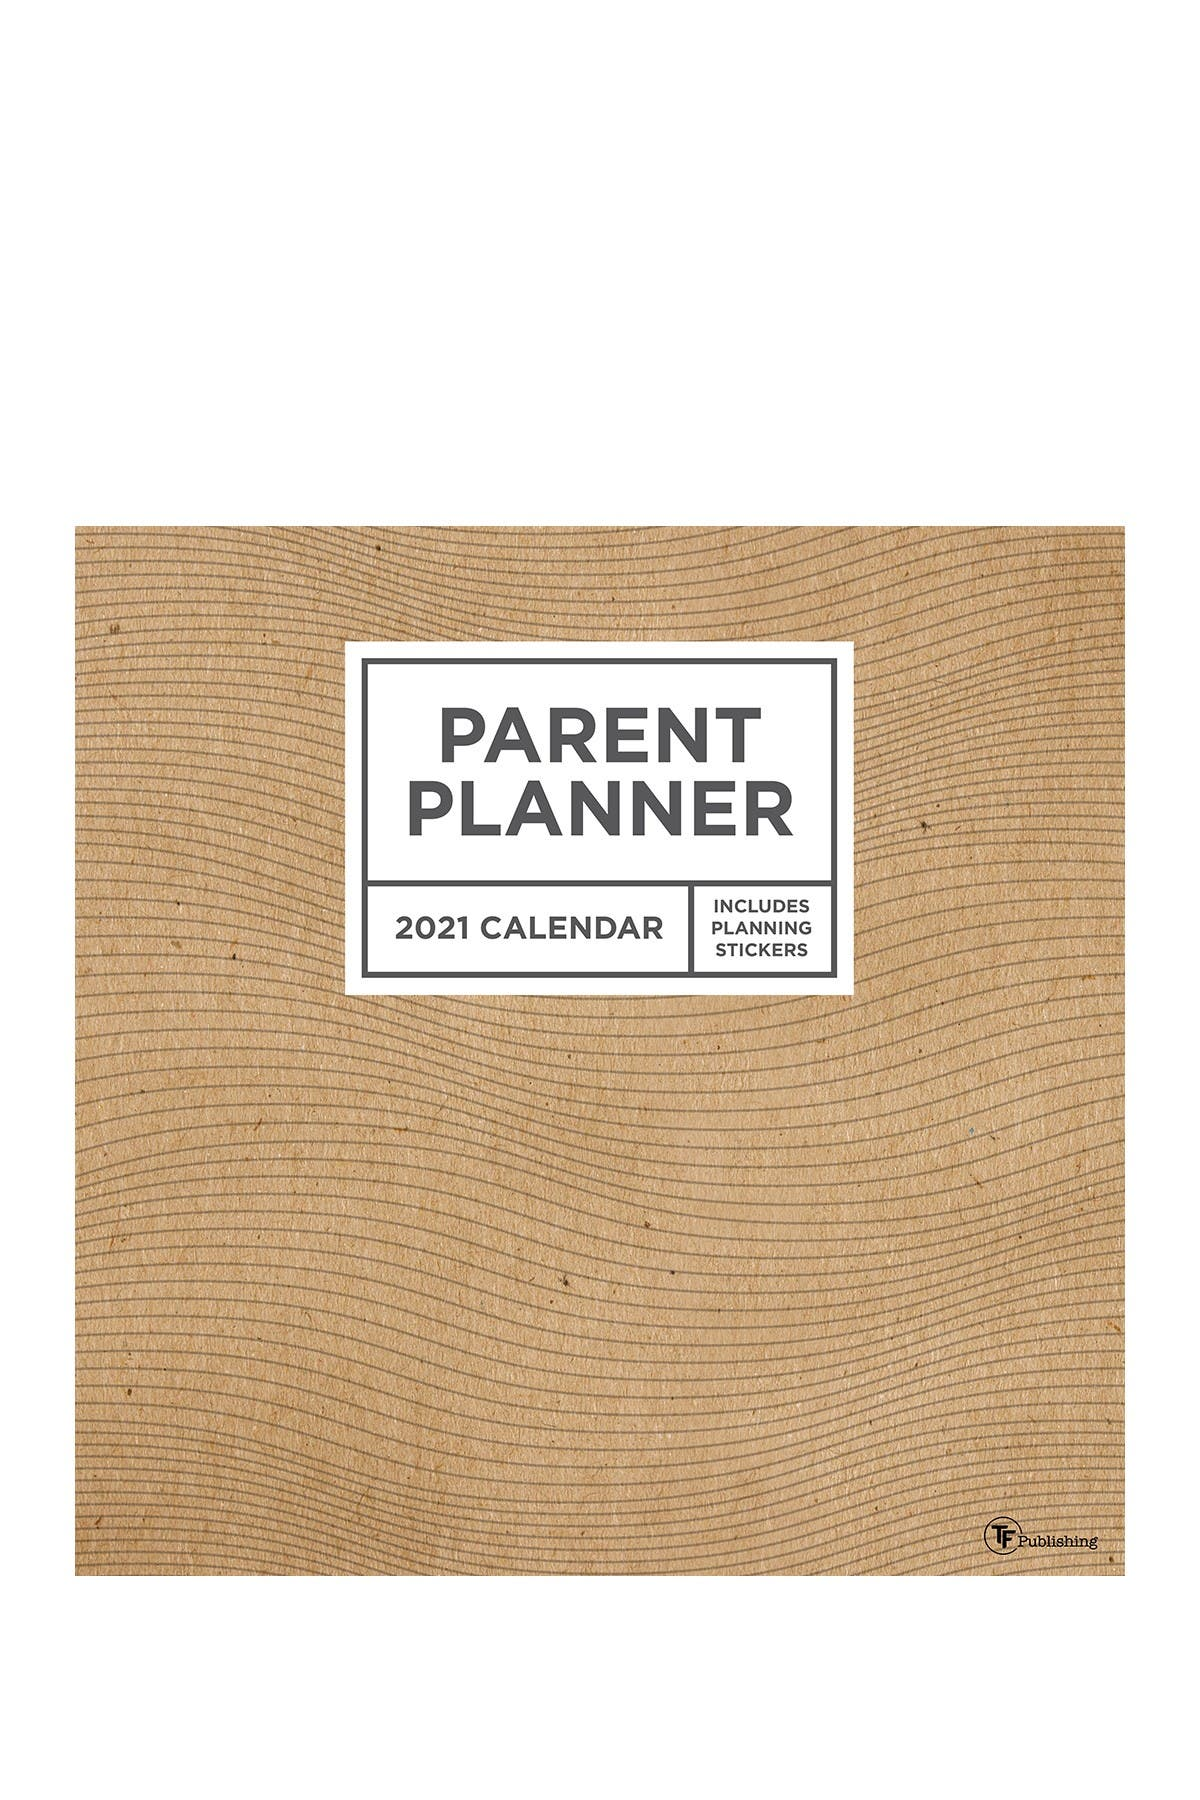 Image of TF Publishing 2021 Parent Planner Wall Calendar